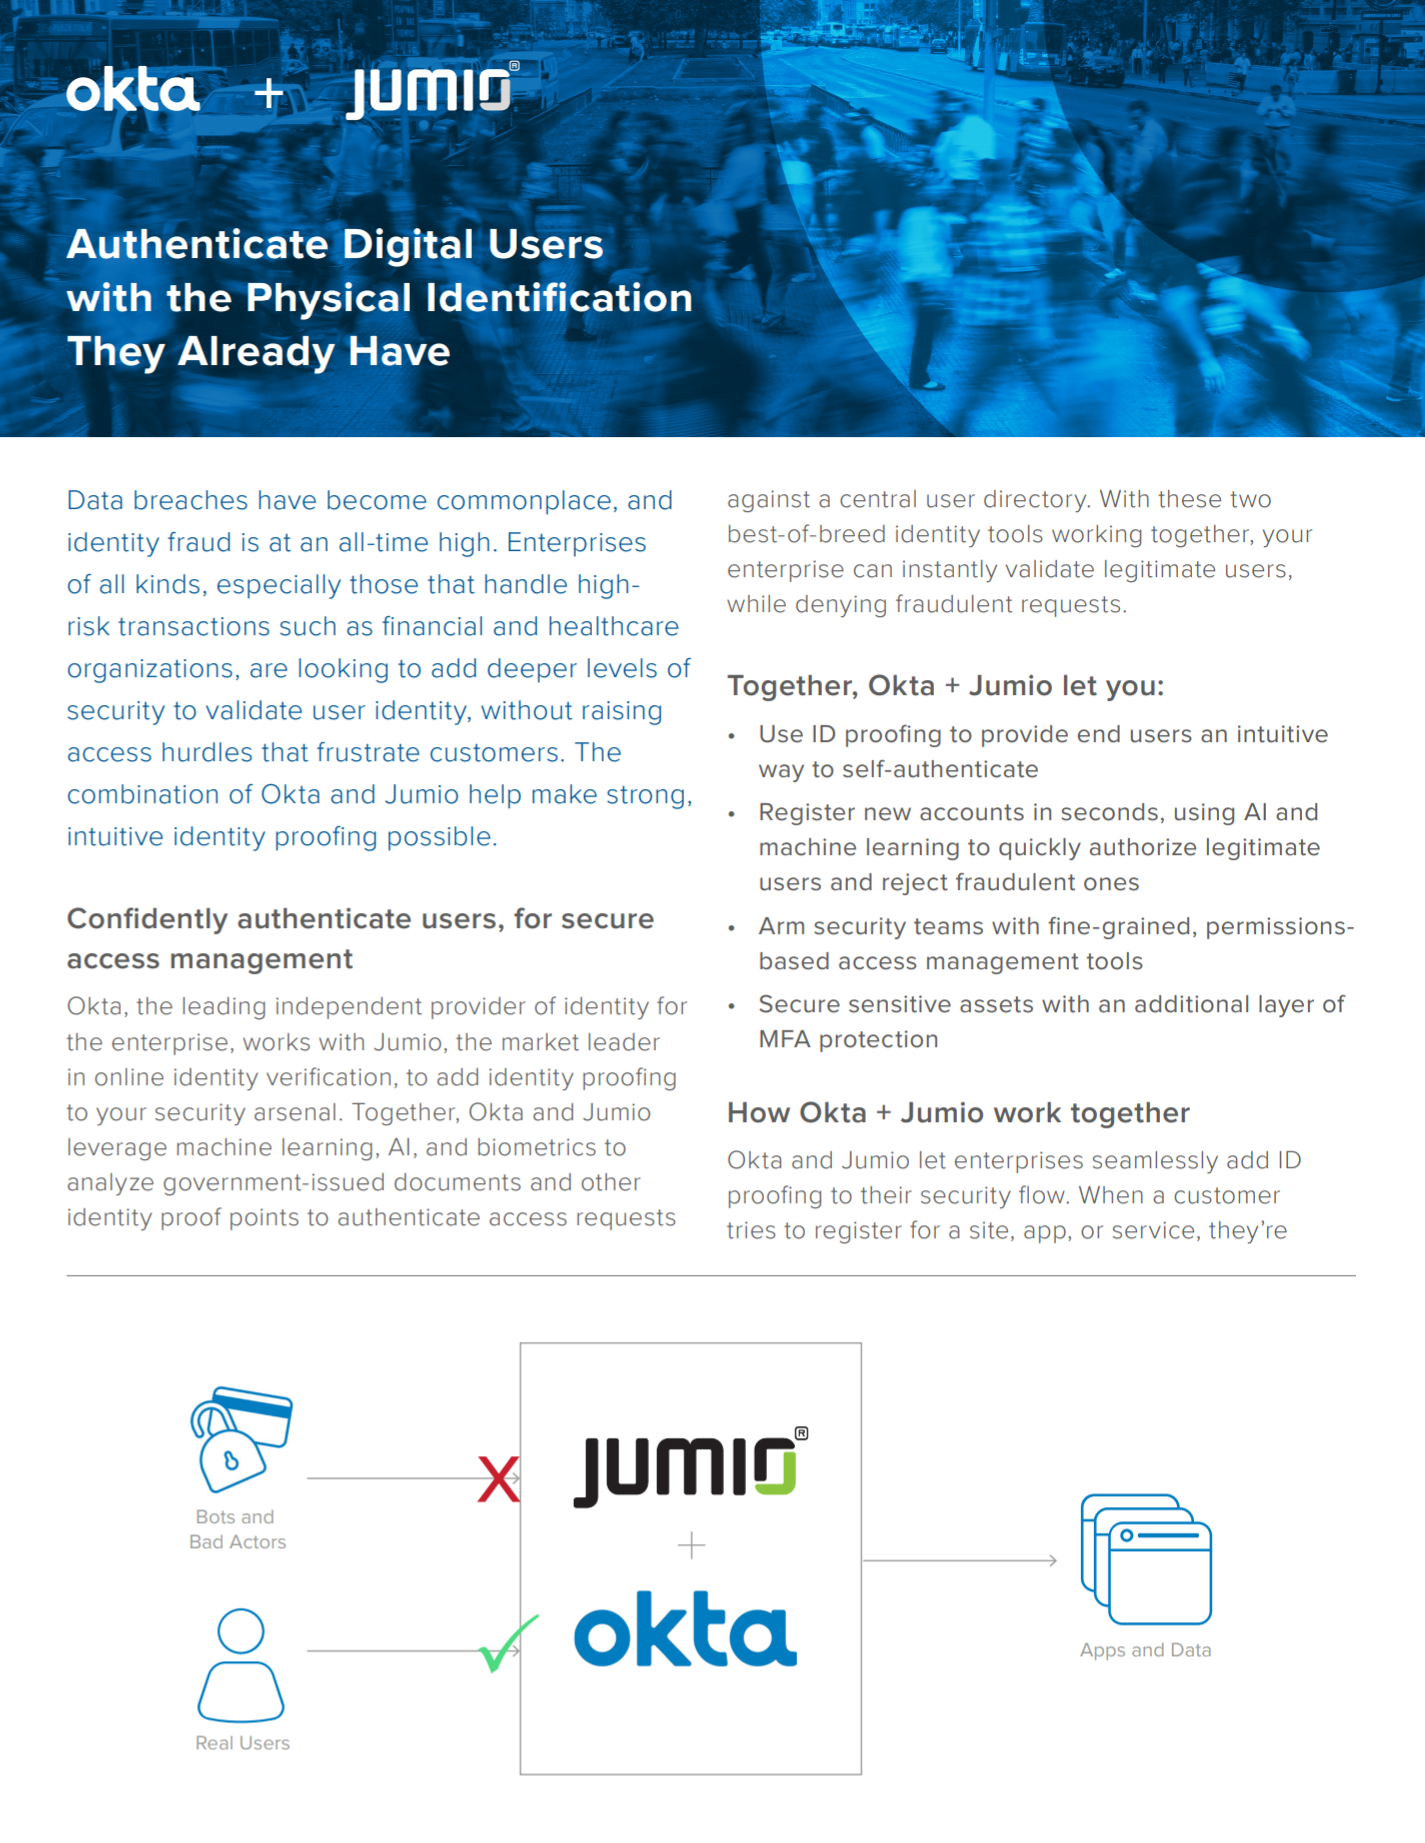 Authenticate digital users with Okta and Jumio.